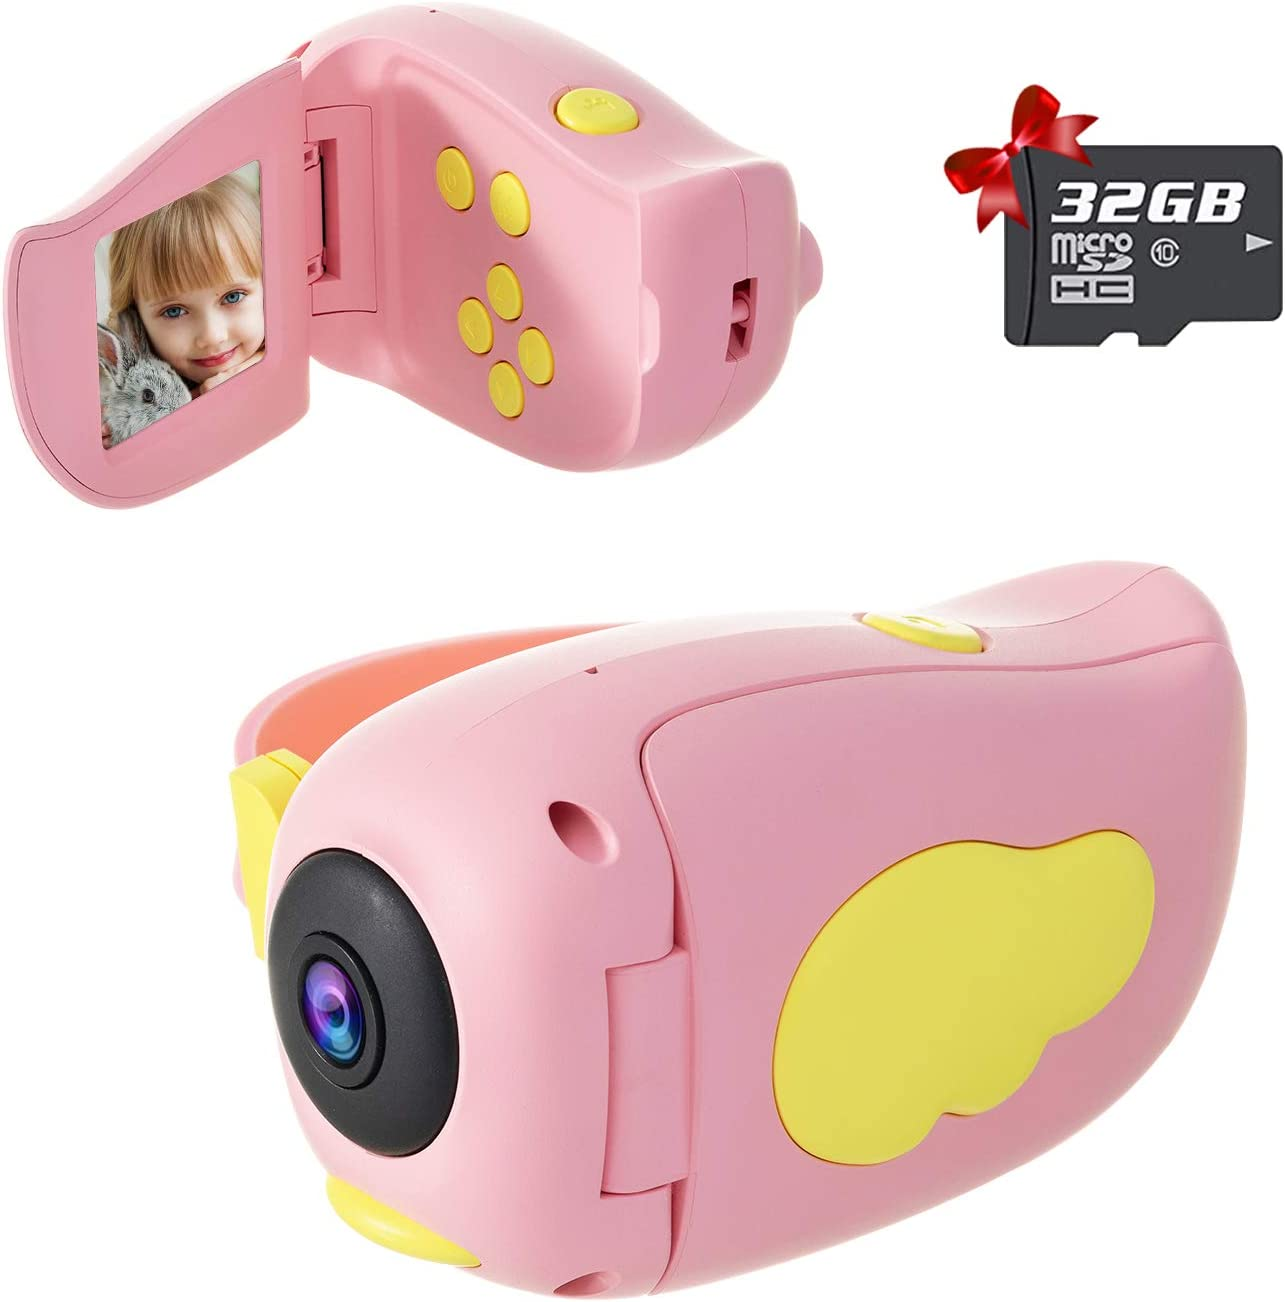 TOPTOO Digital Kids Camcorder Children Video Camera 15M Pixel Auto-Focusing Self-Timer Video-Recording Built-in Filters Stickers with Rechargeable 400mAh Battery